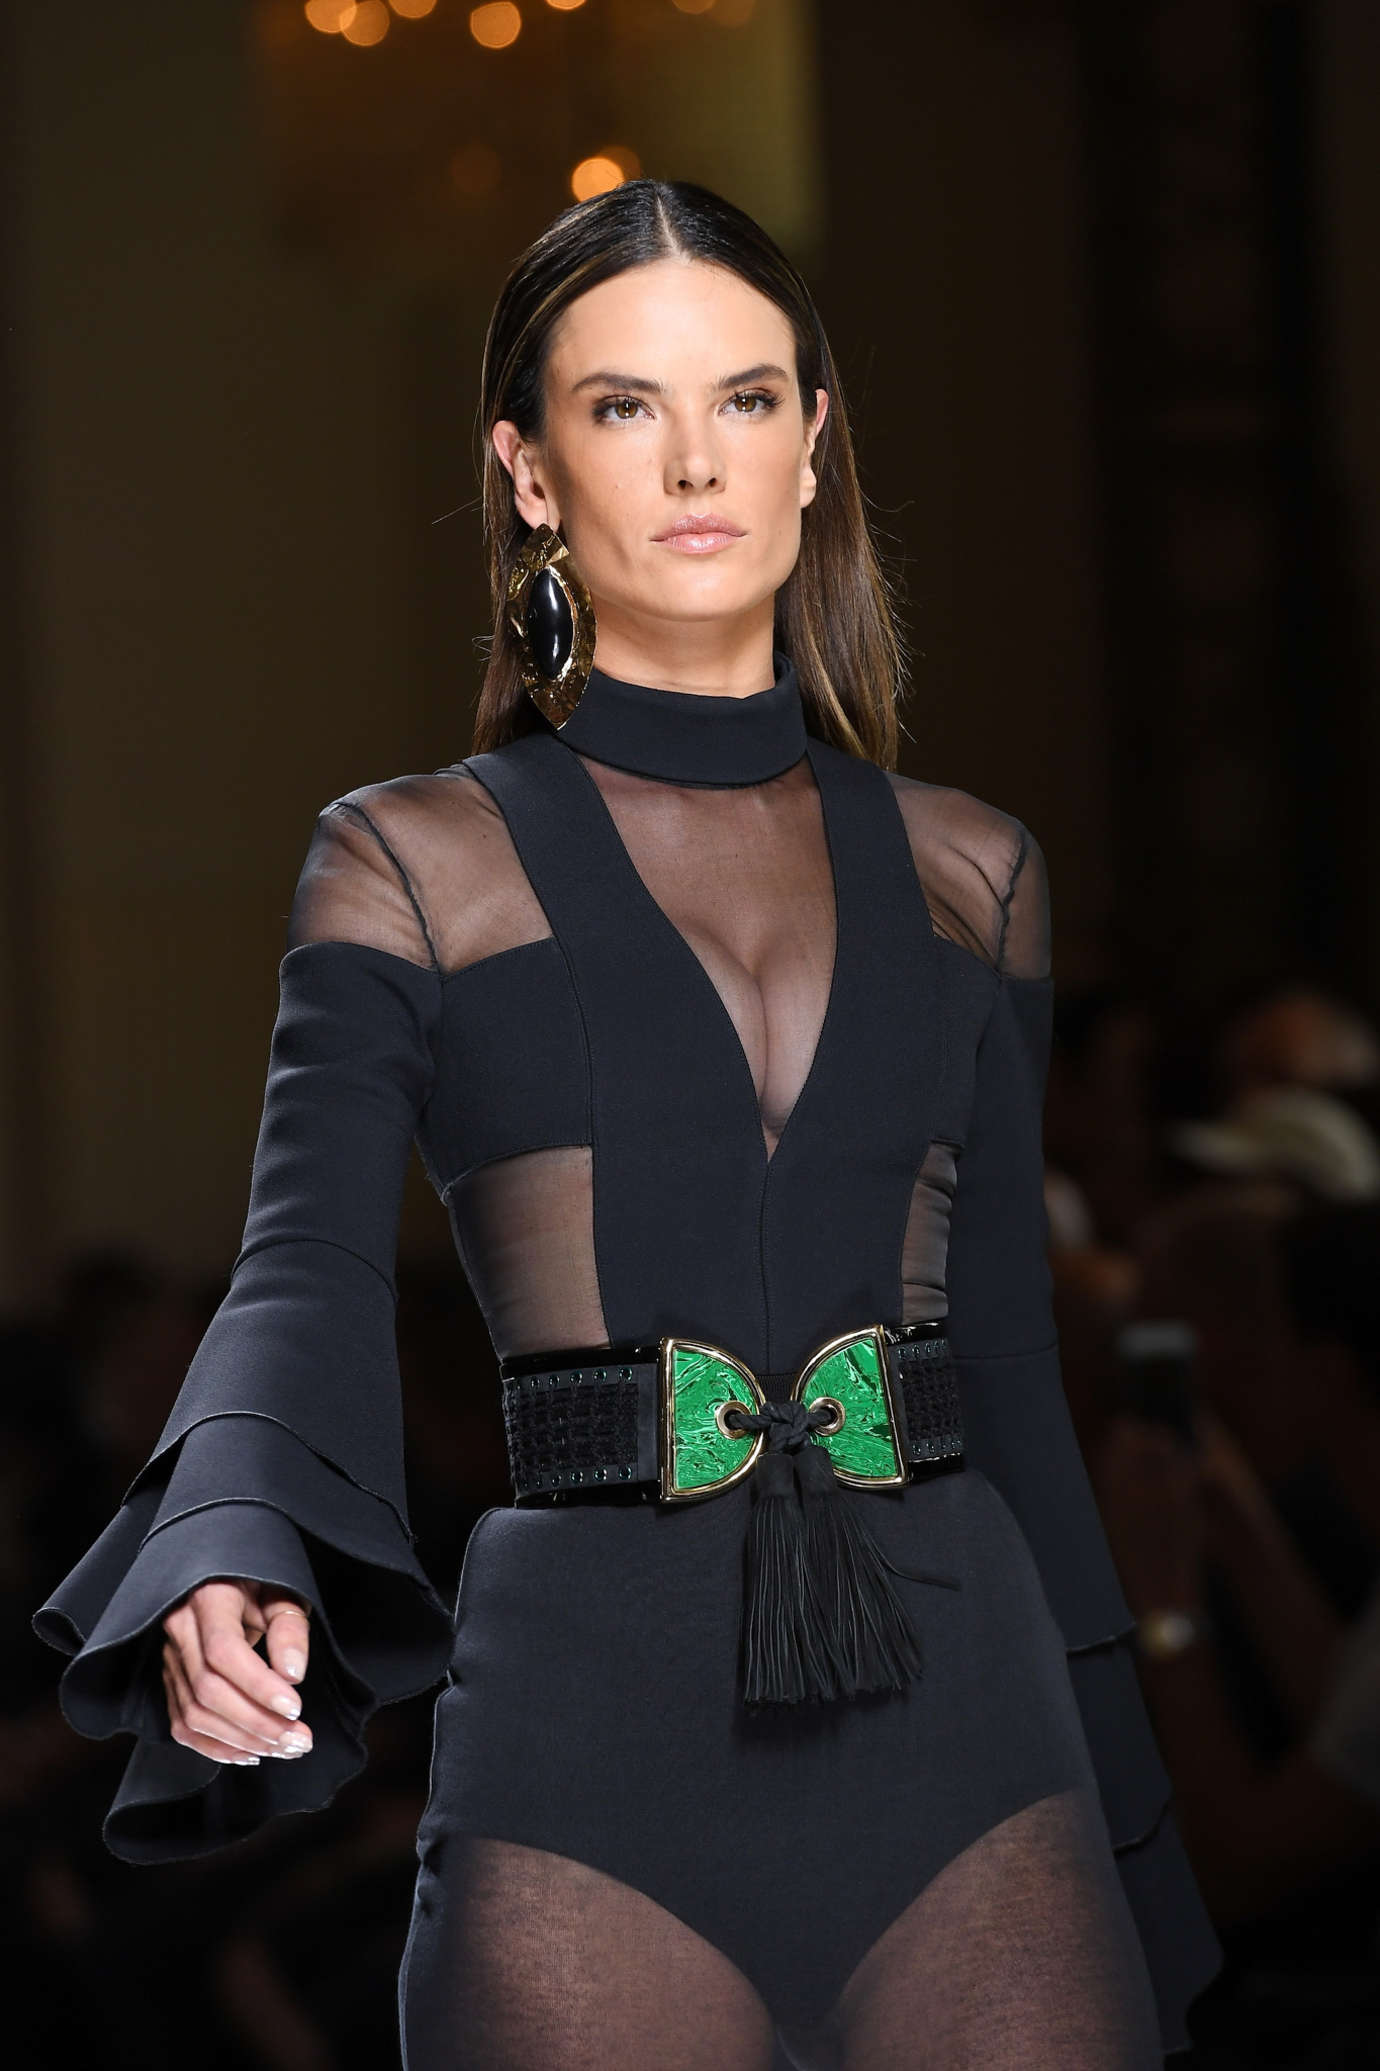 alessandra ambrosio balmain runway 2017 paris fashion week in paris. Black Bedroom Furniture Sets. Home Design Ideas